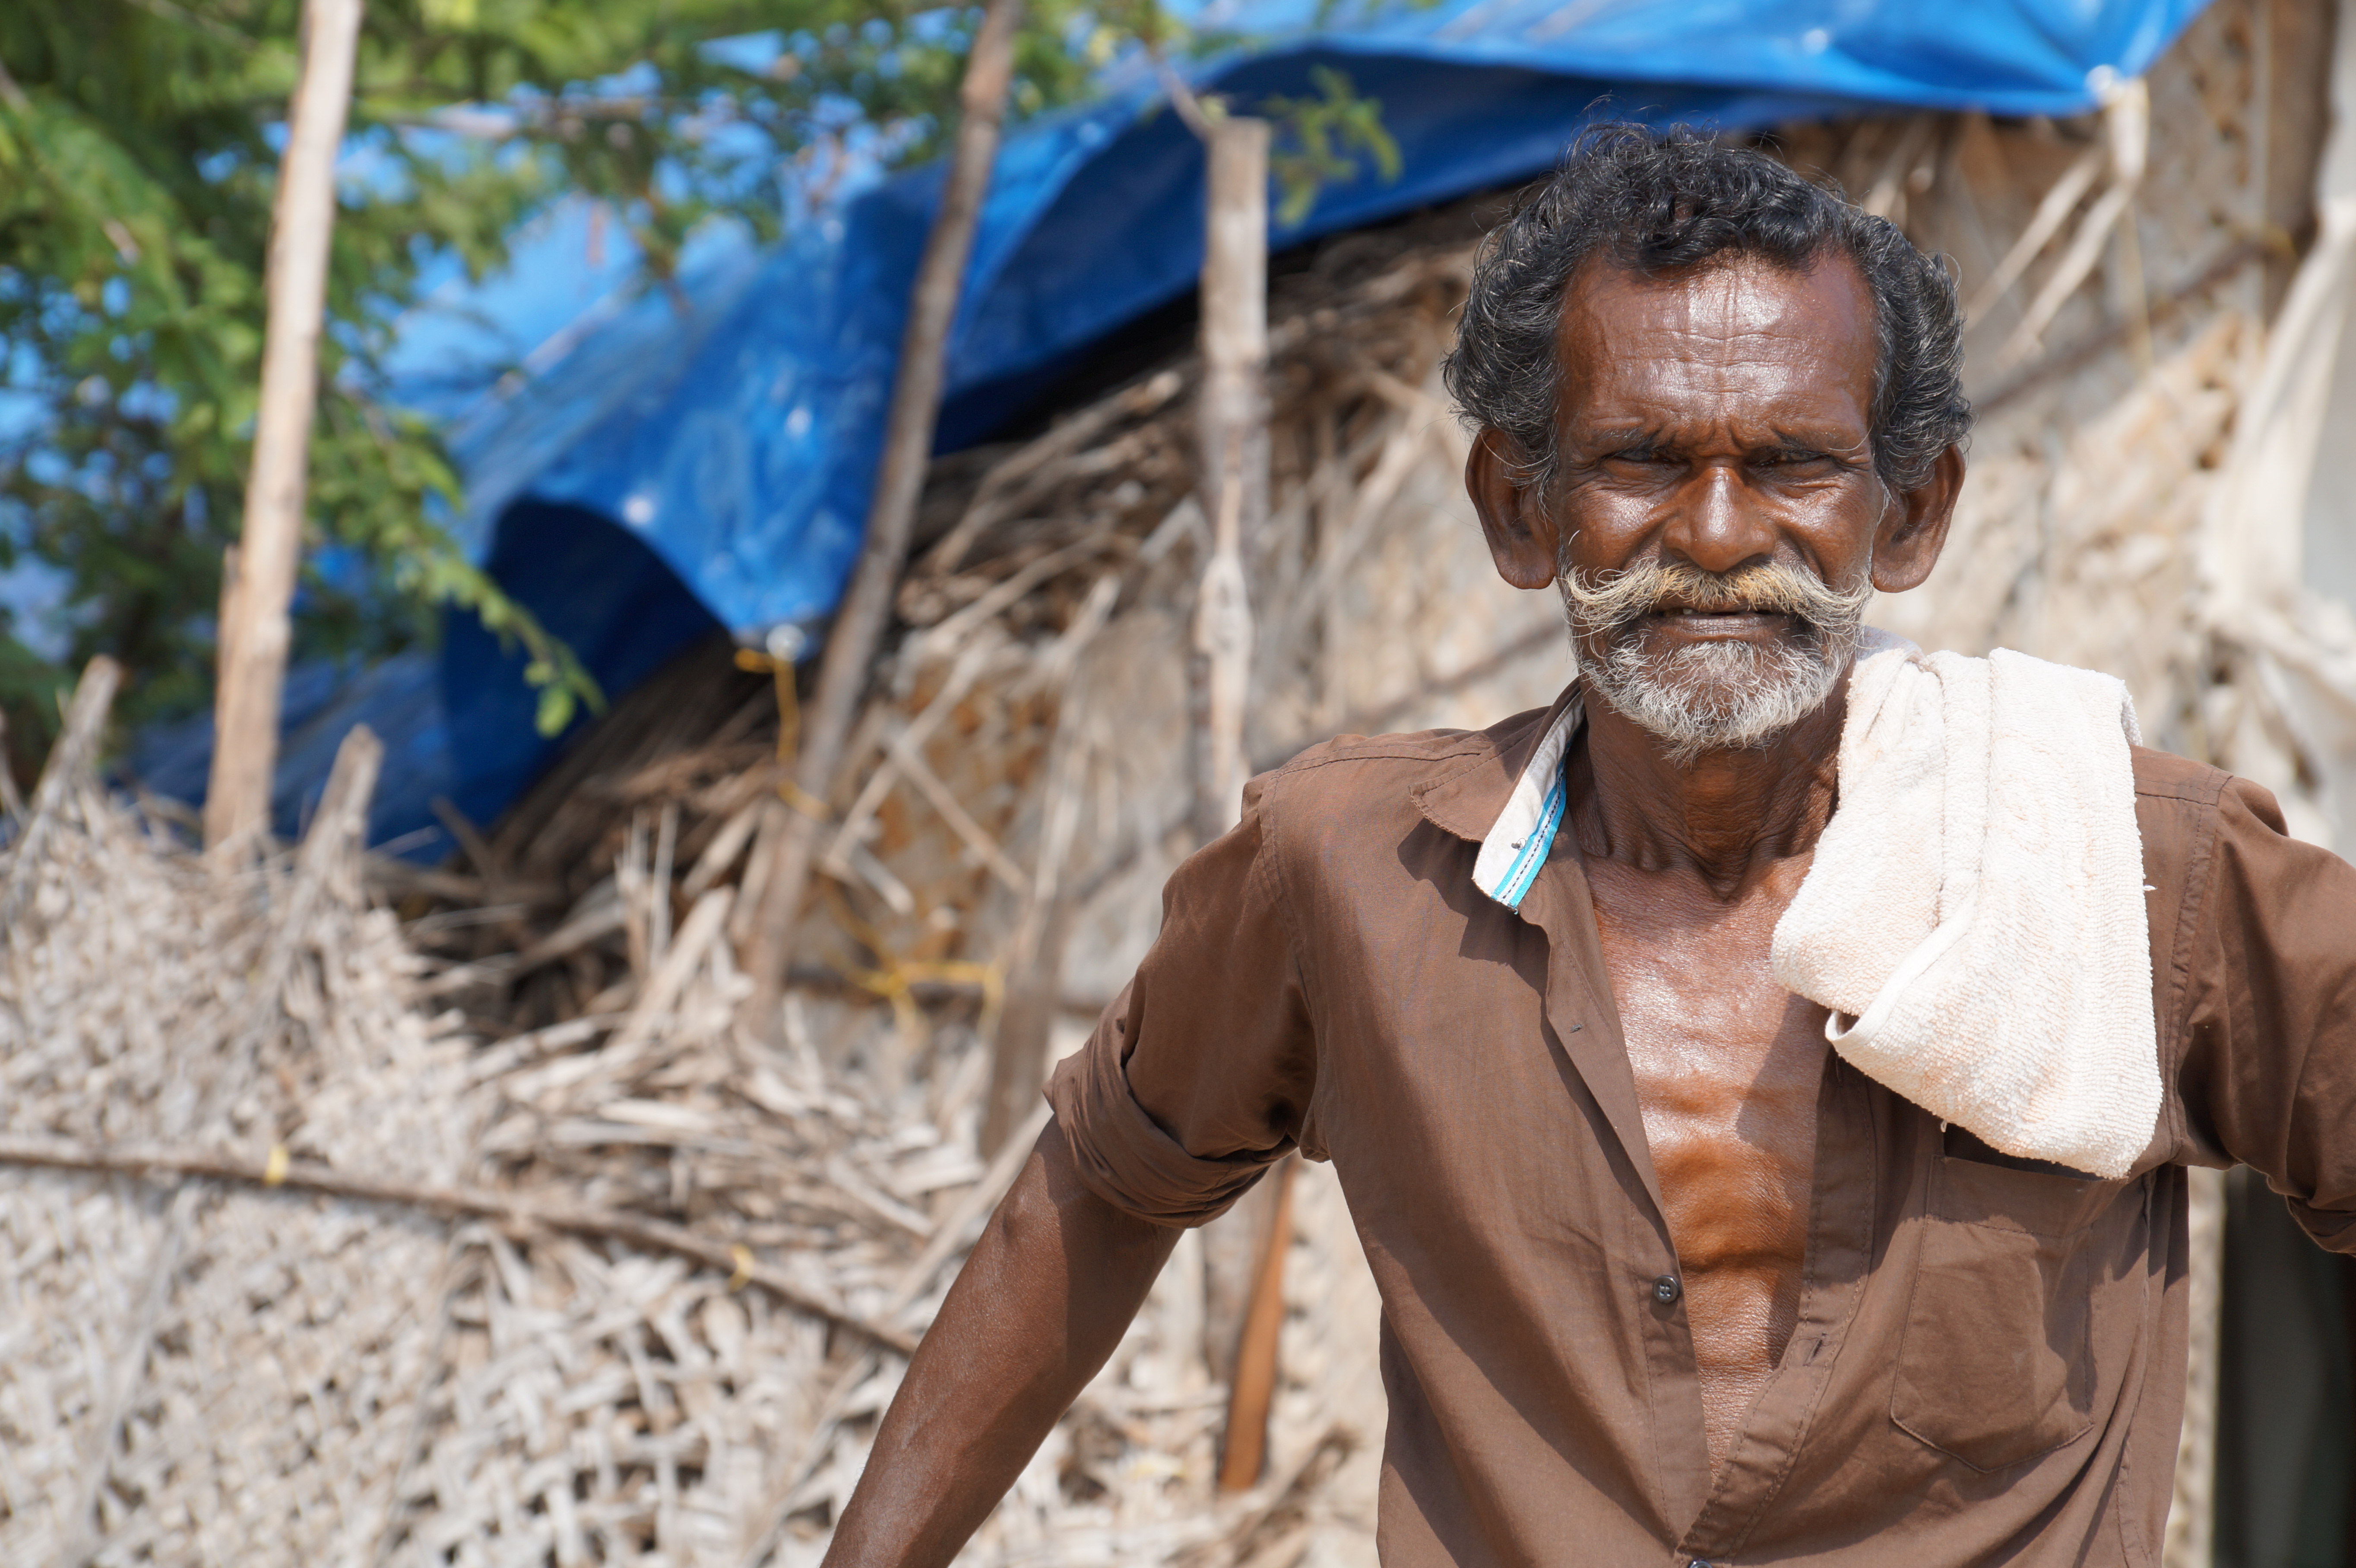 1. Anthony was born across the Strait in Sri Lanka but has lived in Rameswaram since 1974. Several days a week, he'll leave the harbor at 1 p.m. in his country boat, go nine miles out to sea, stopping just short of the international boundary, and return the following morning. / 2. The office of a seafood distributor just behind the jetty in Rameswaram.